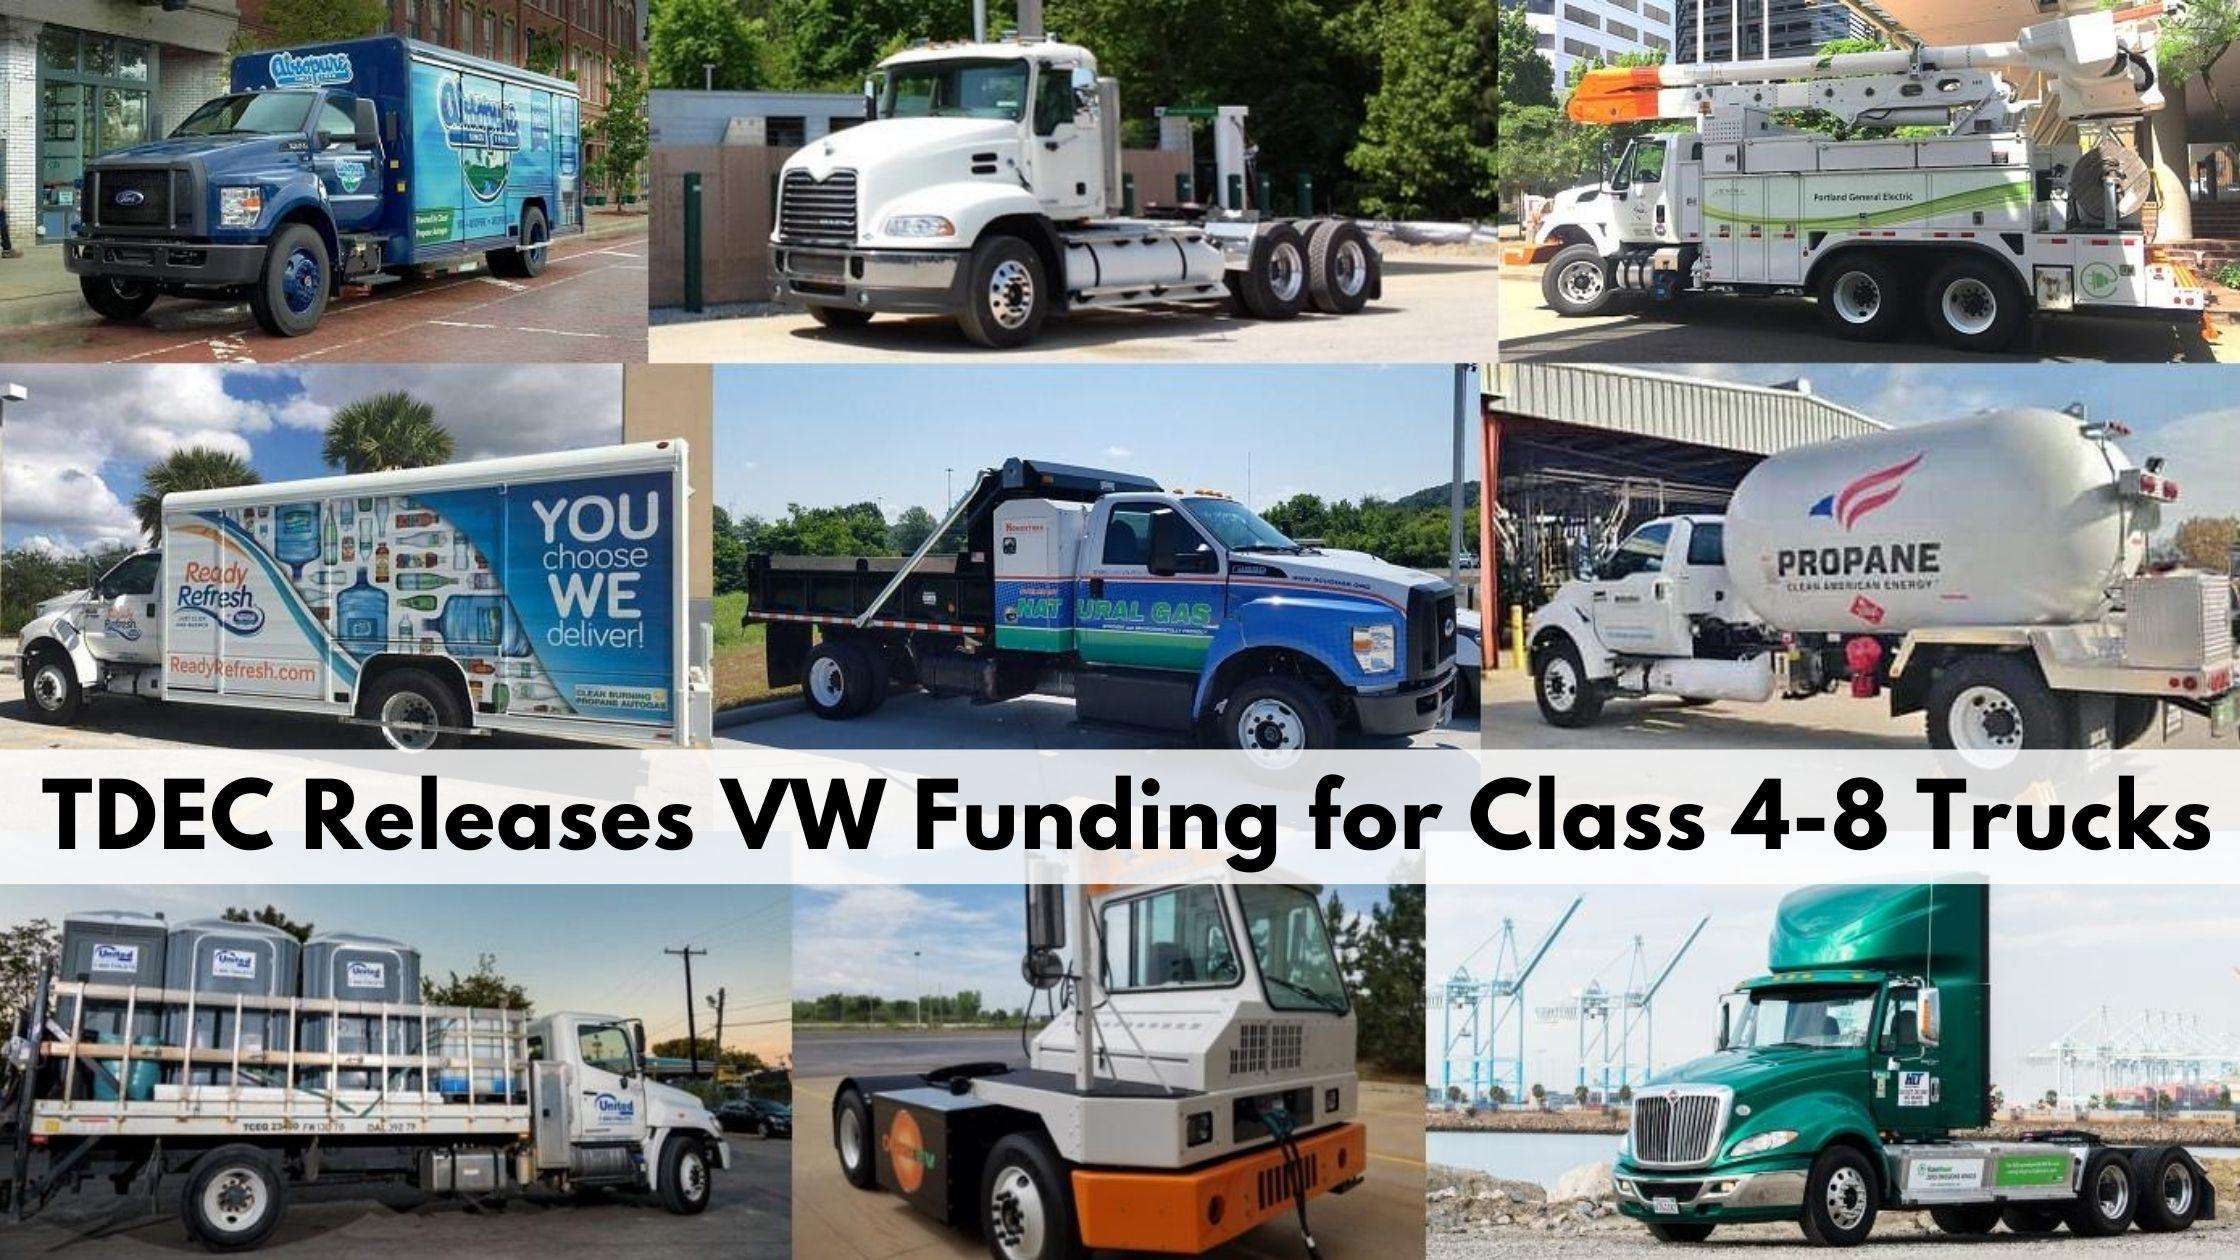 TDEC releases VW Funding for Class 4-8 Trucks